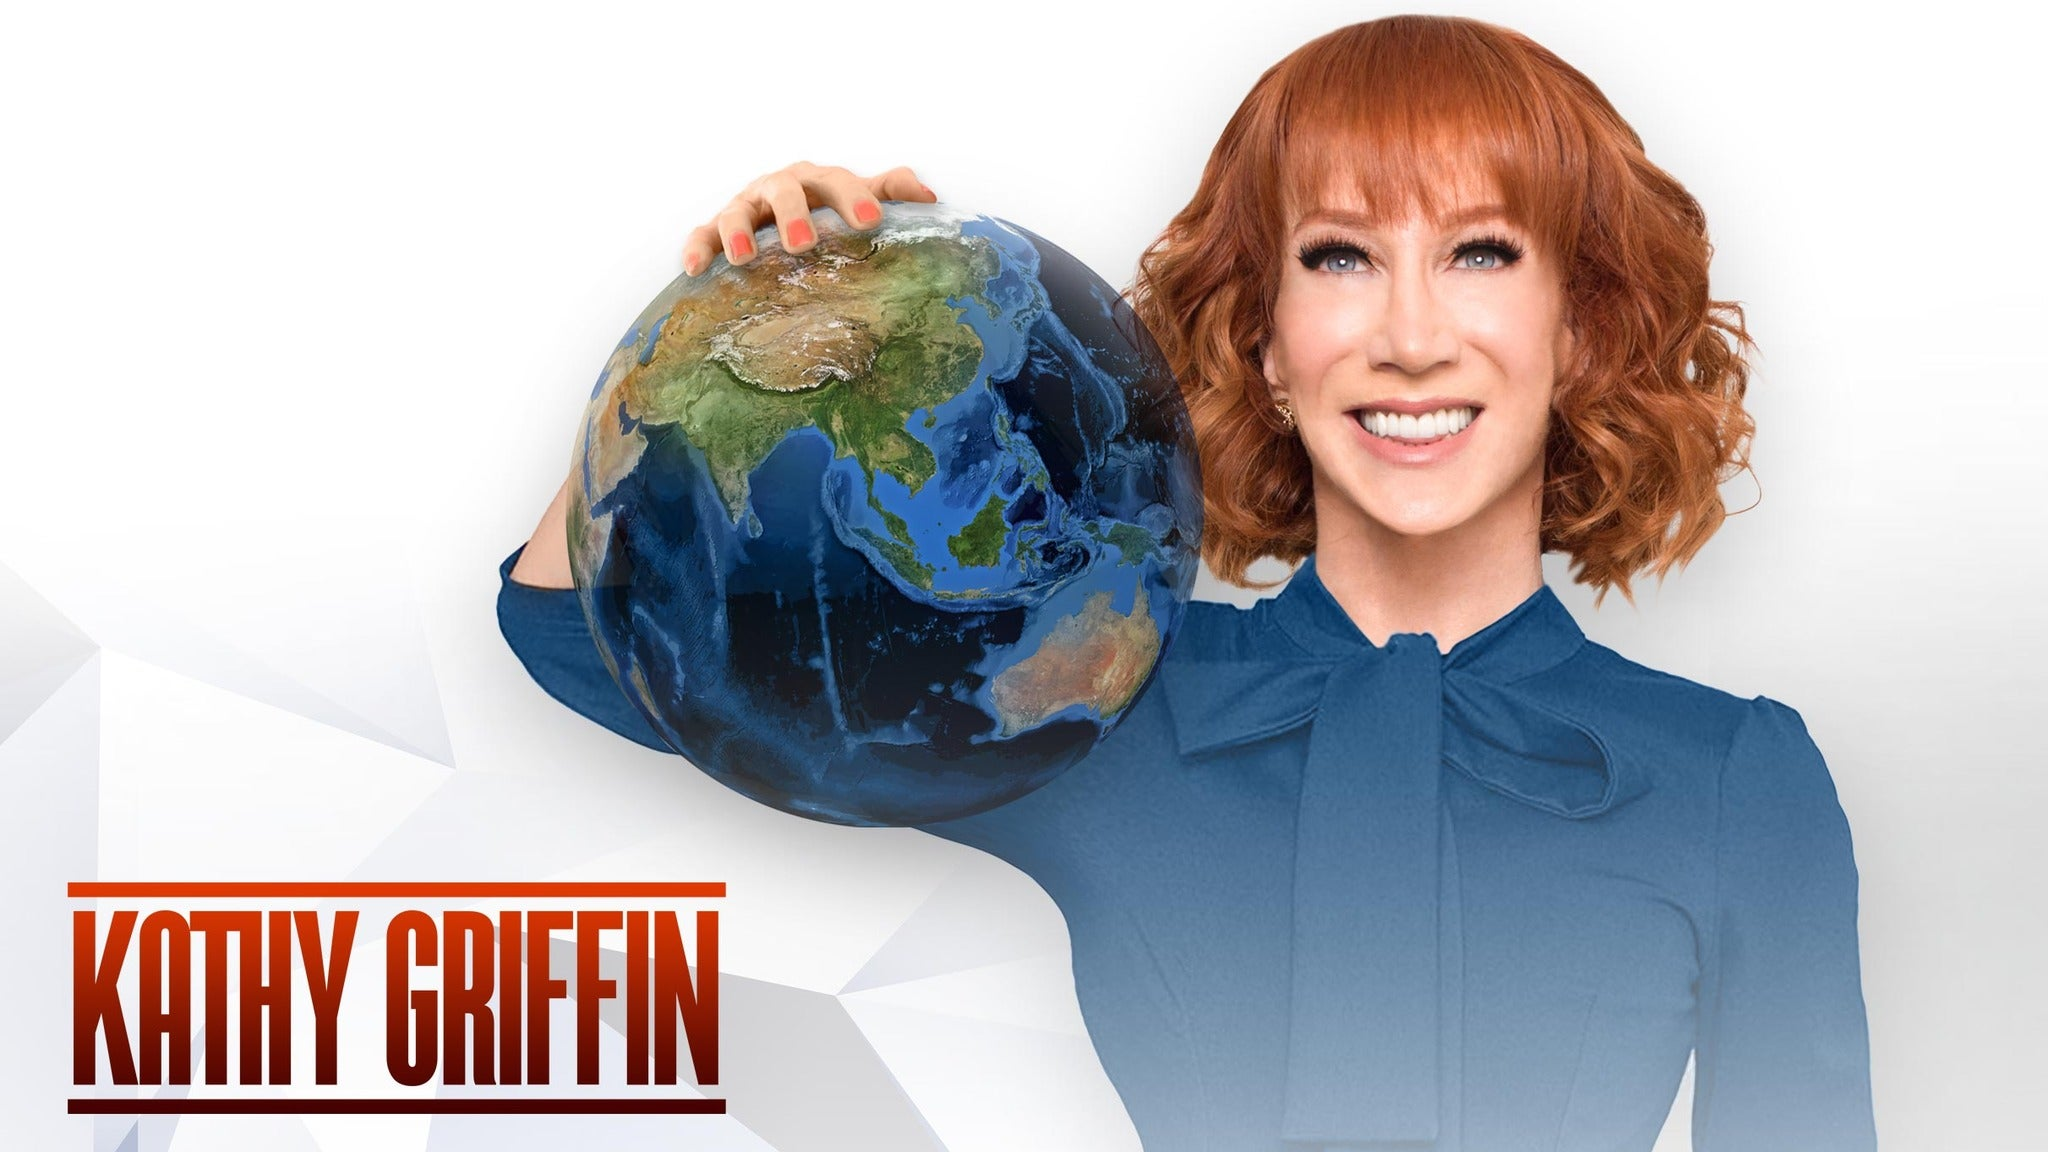 Kathy Griffin: Laugh Your Head Off World Tour